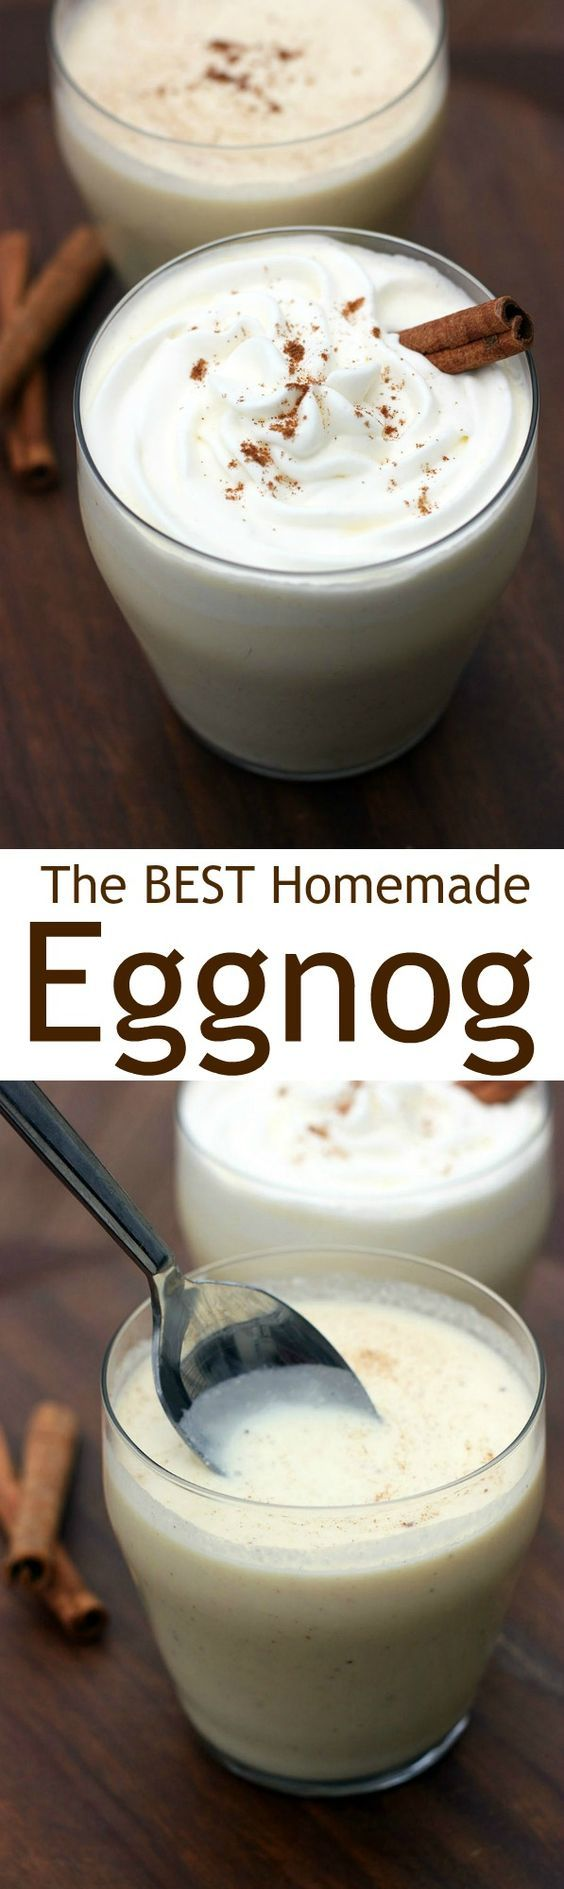 The BEST (and easiest) Homemade Eggnog recipe! On TastesBetterFromScratch.com